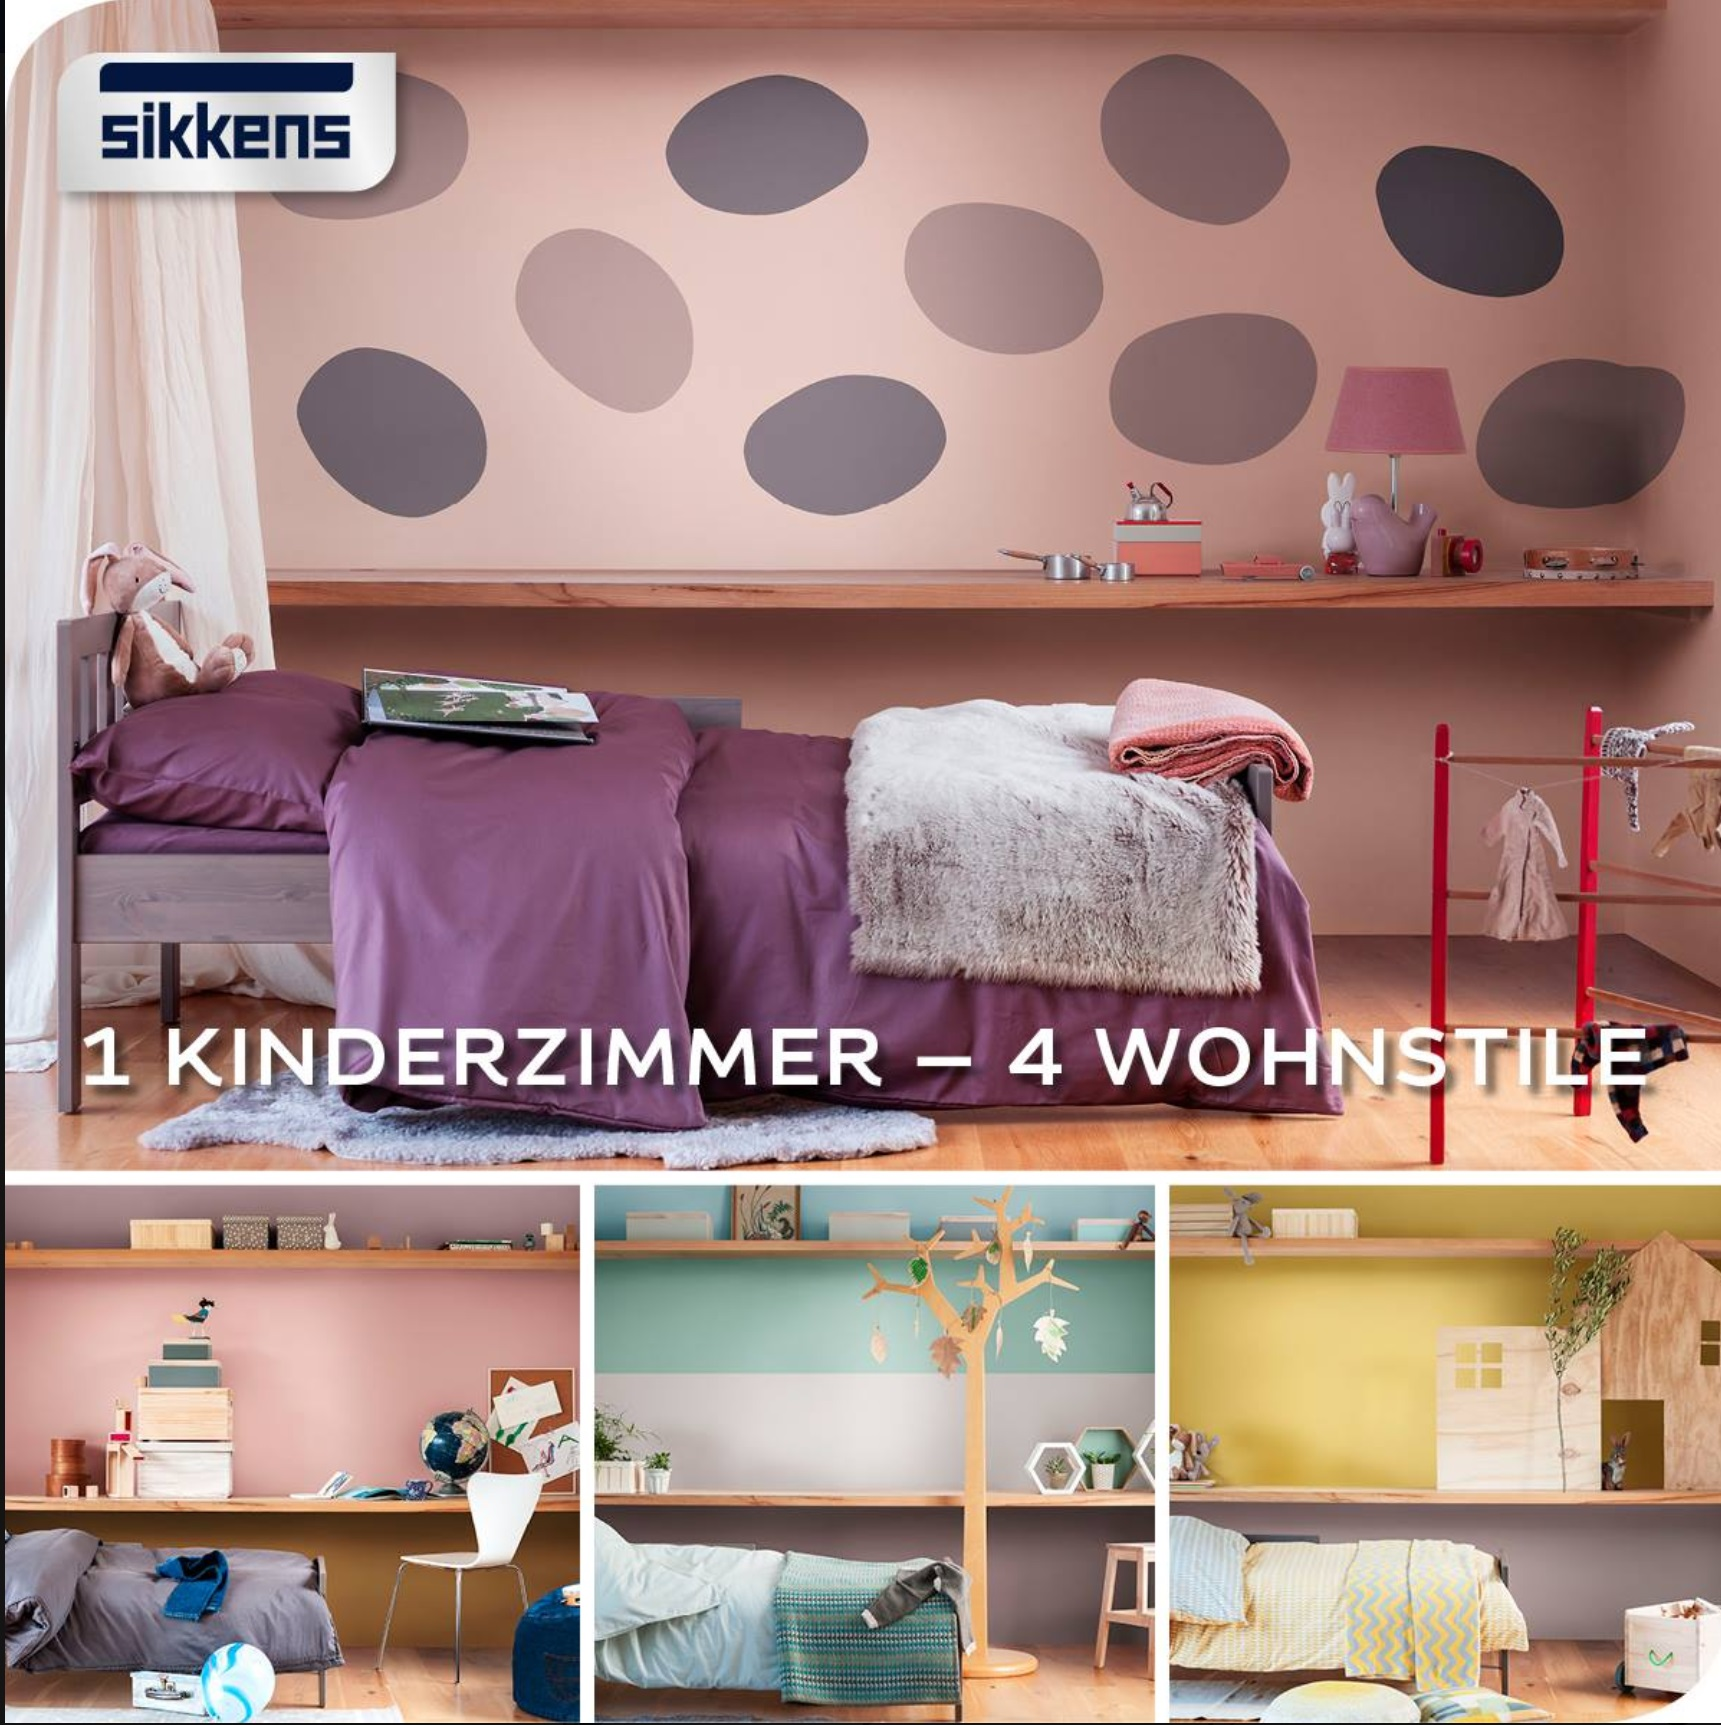 farben f r ihr kinderzimmer malerei lackner mondsee farben anstriche innen aussen. Black Bedroom Furniture Sets. Home Design Ideas